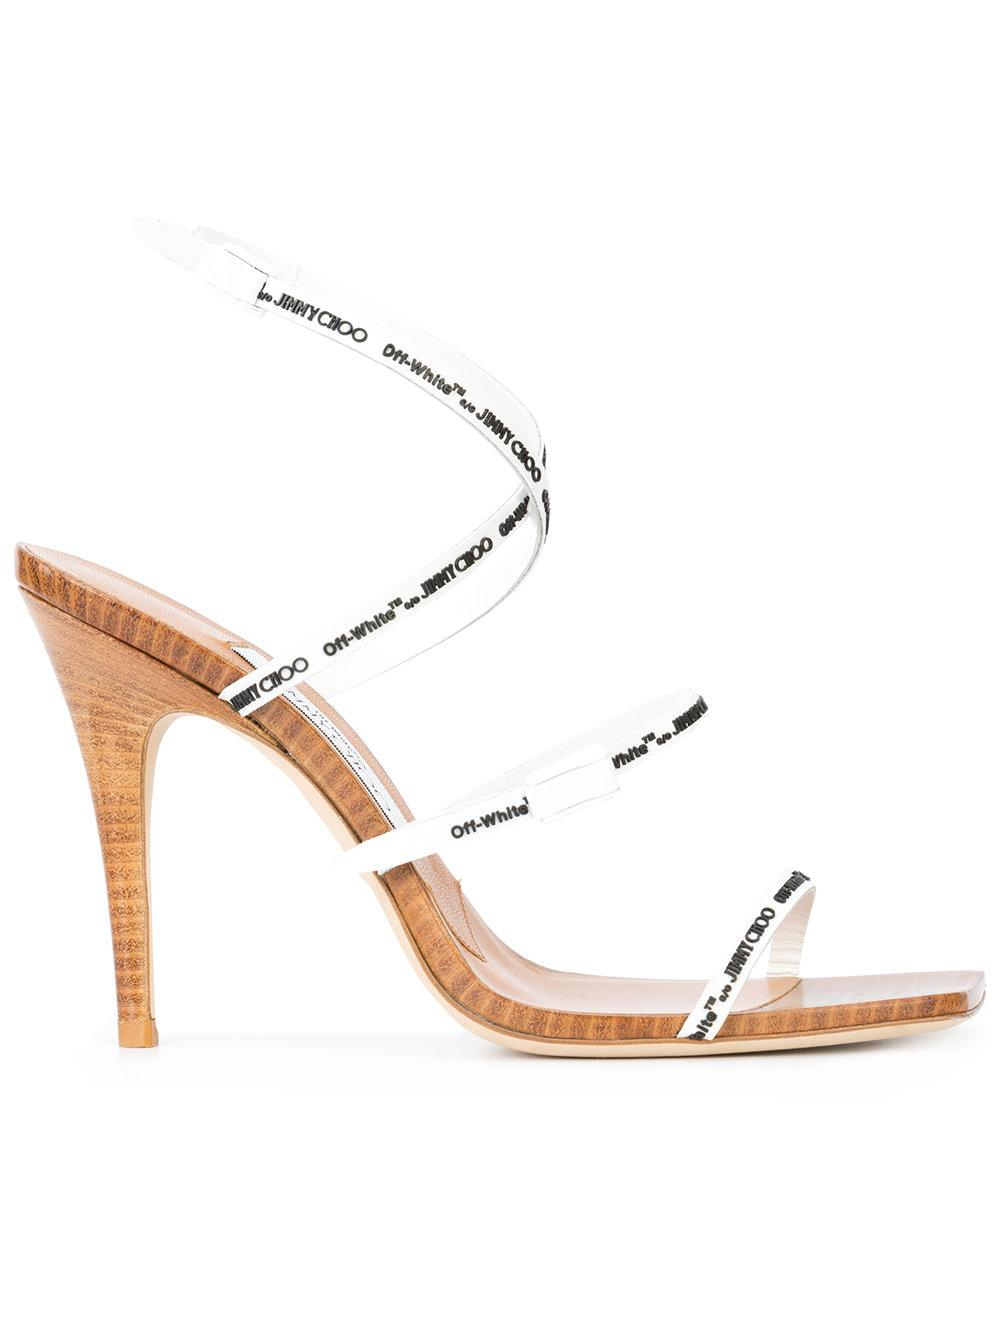 66ca77a3f0 Off-White X Jimmy Choo Jane 100 Sandals | ModeSens